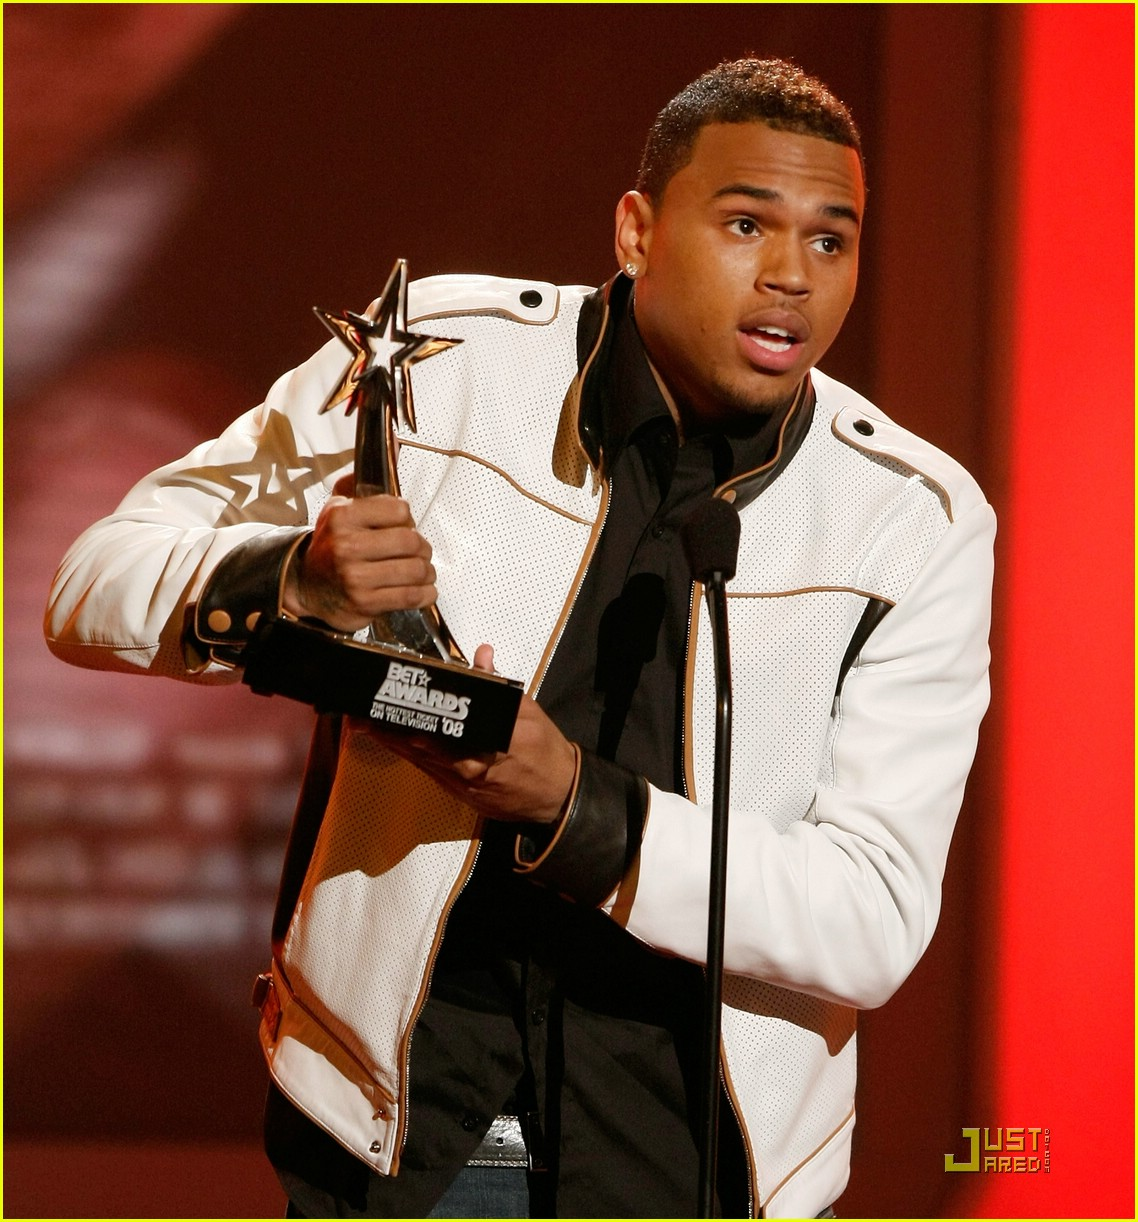 Chris Brown 2008 chris brown bet awards 2008 26